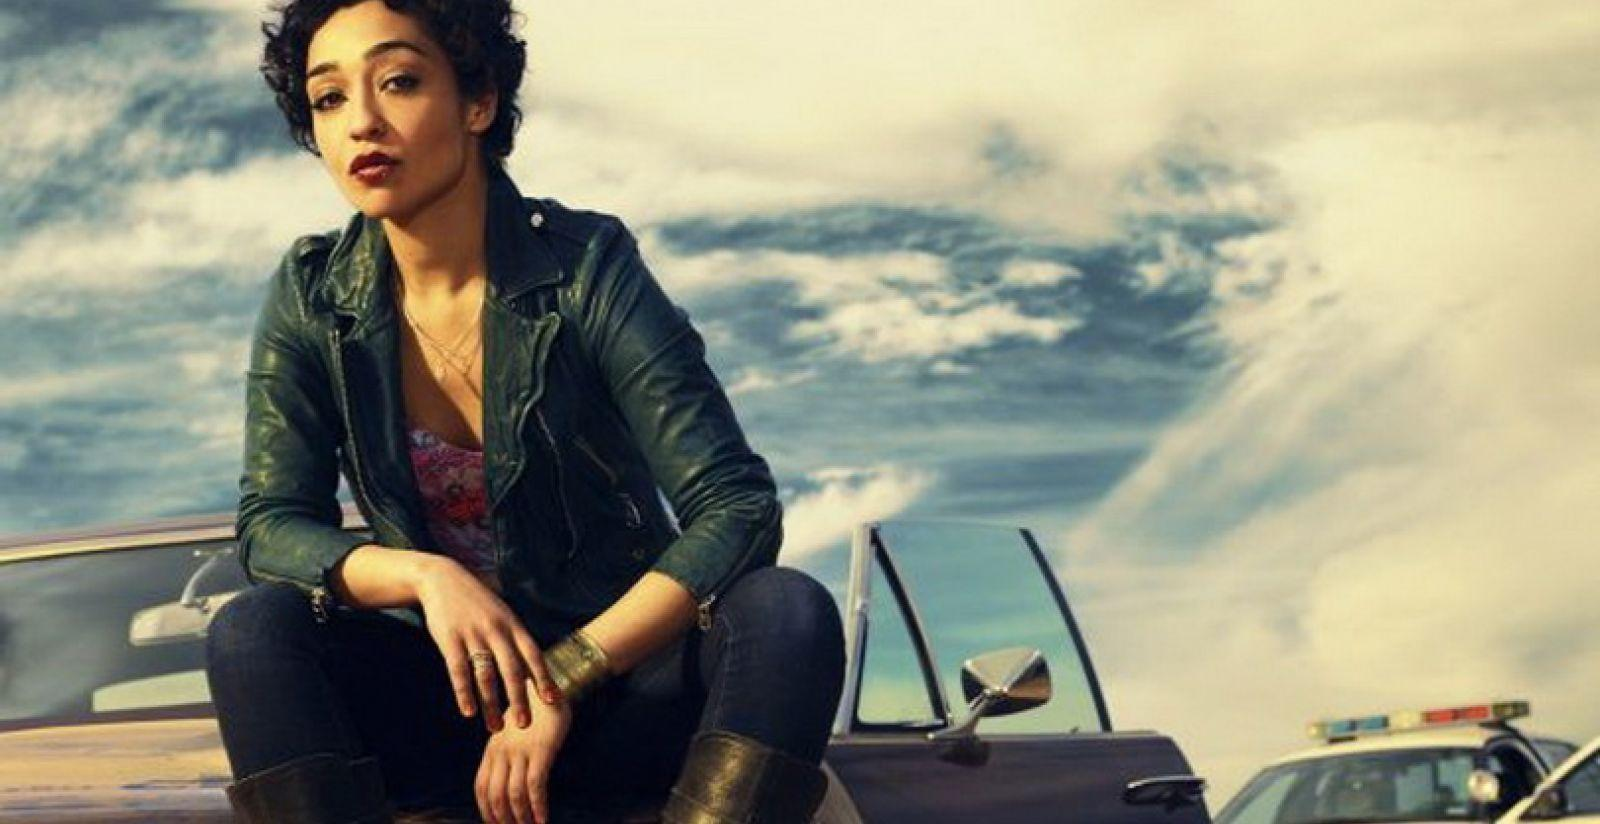 Download-Free-Ruth-Negga-HD-Image-653x408.jpg